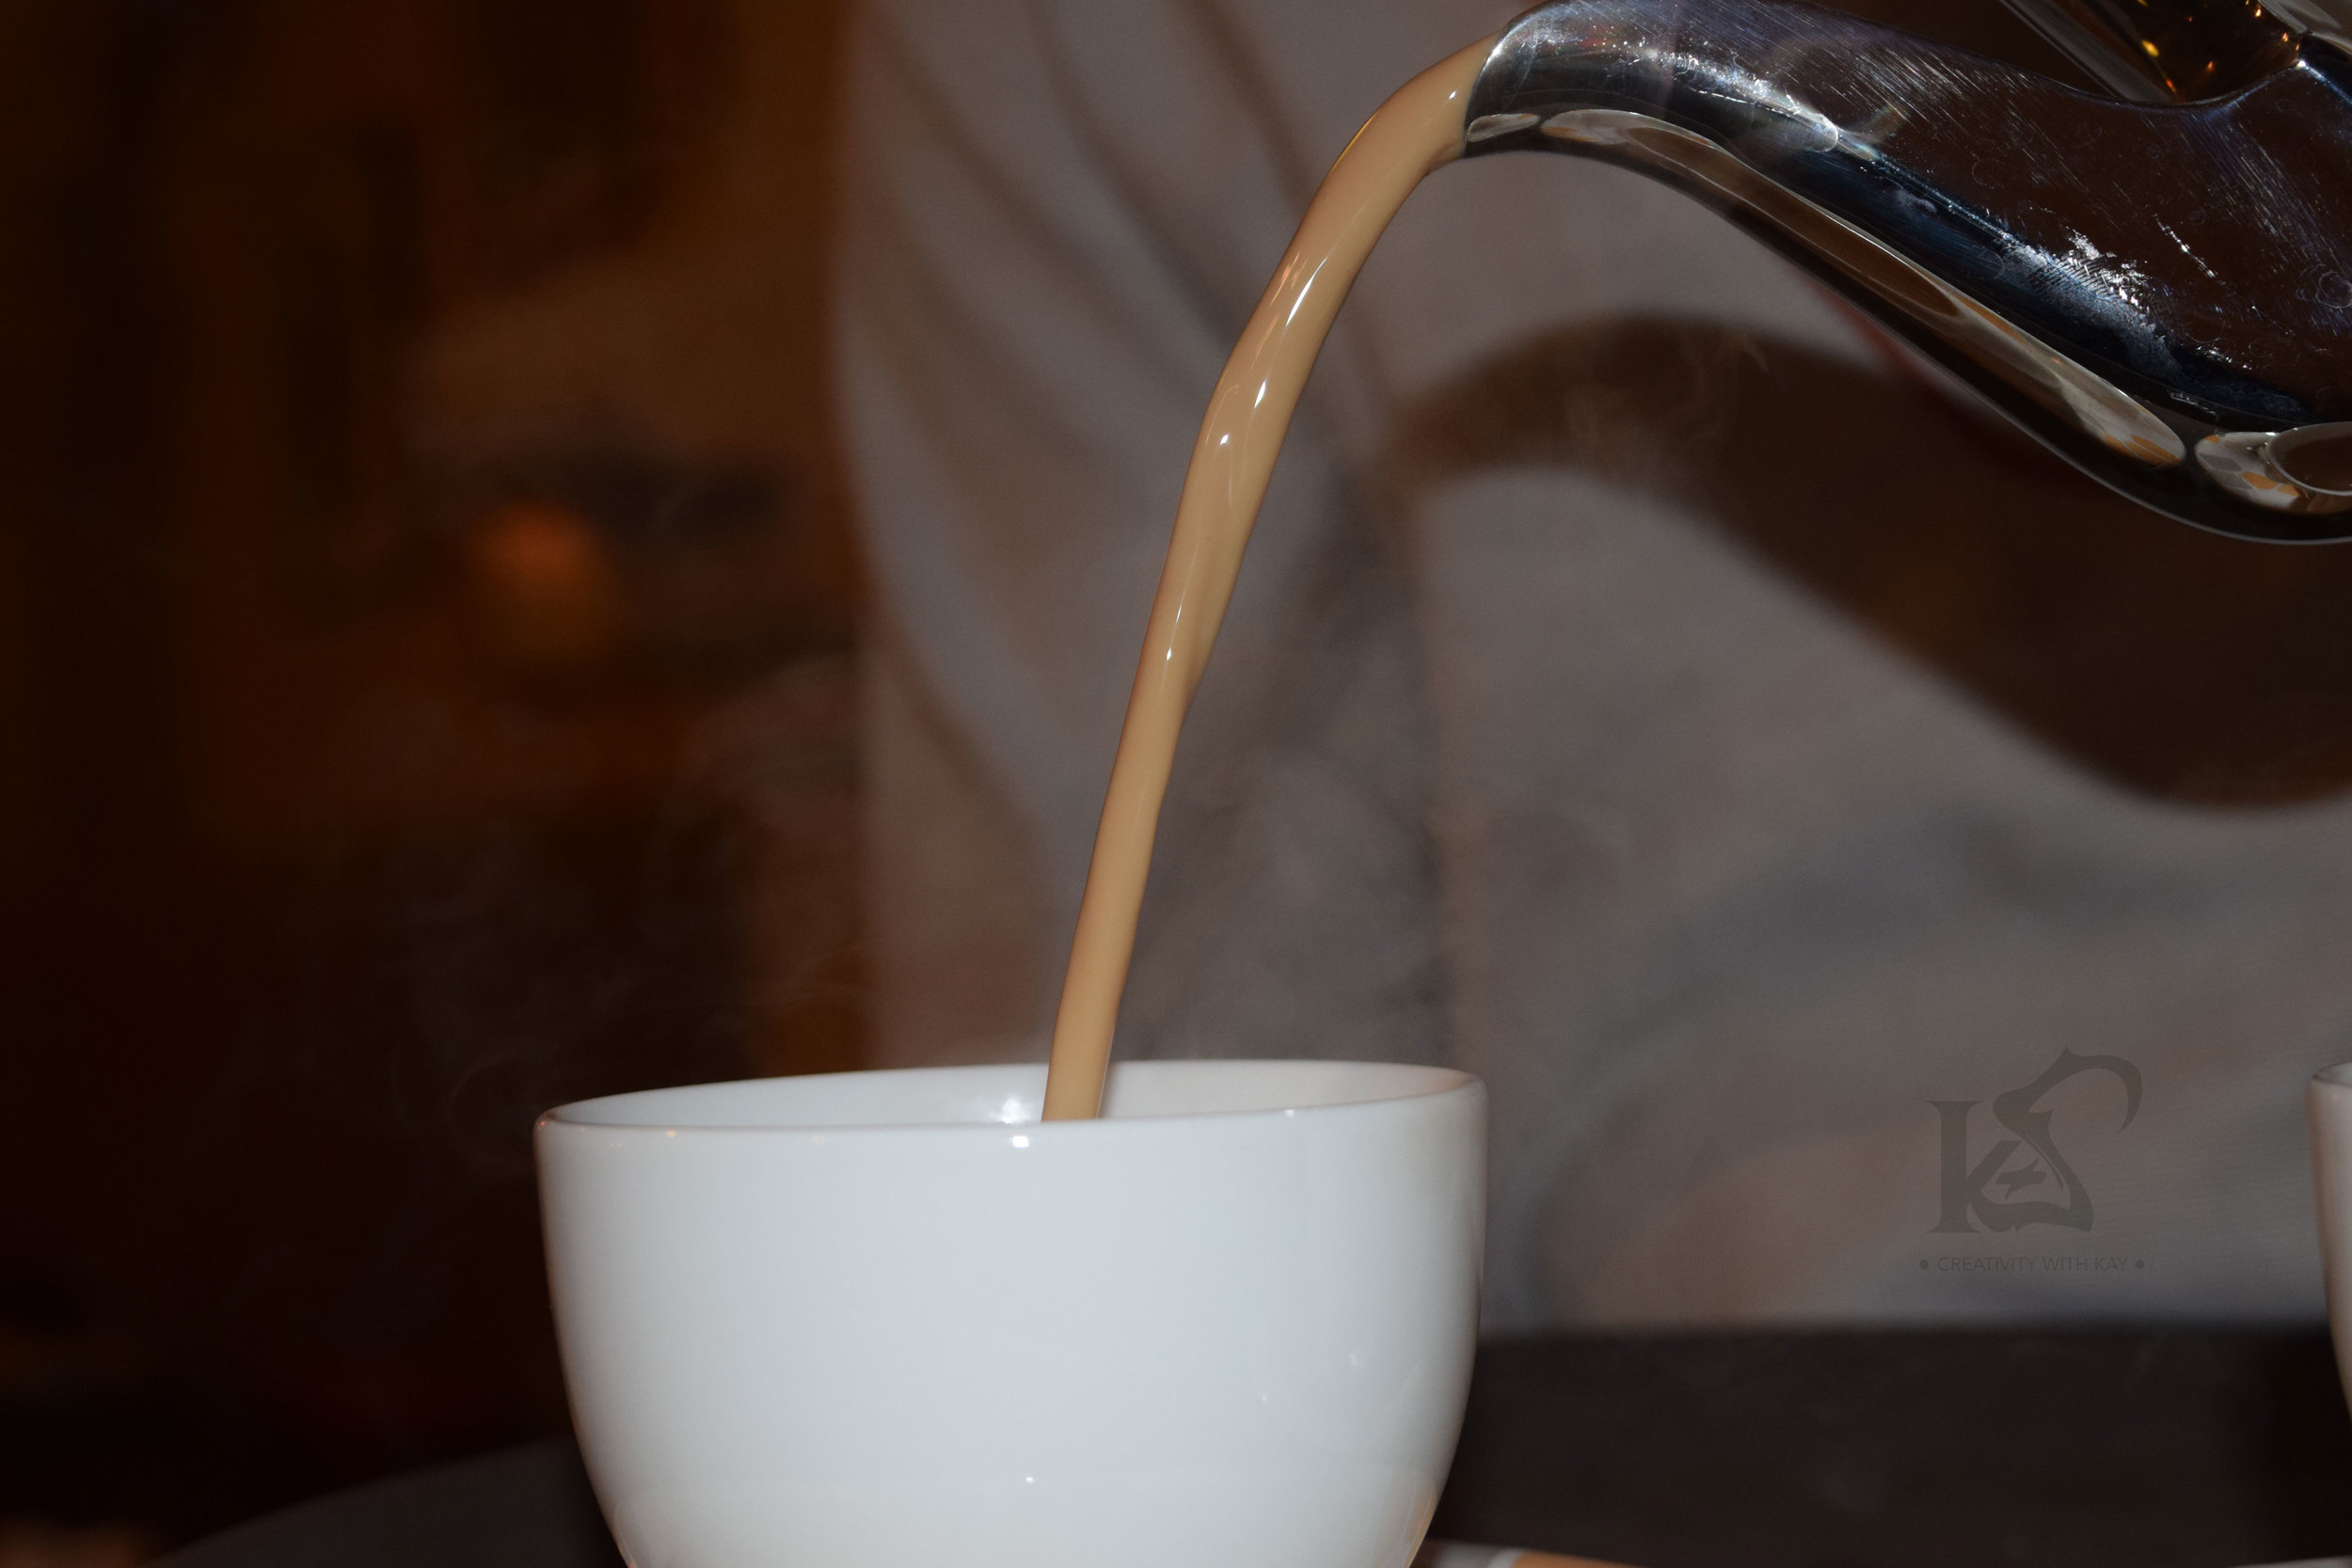 Steaming Hot delicious Karak being served for me!